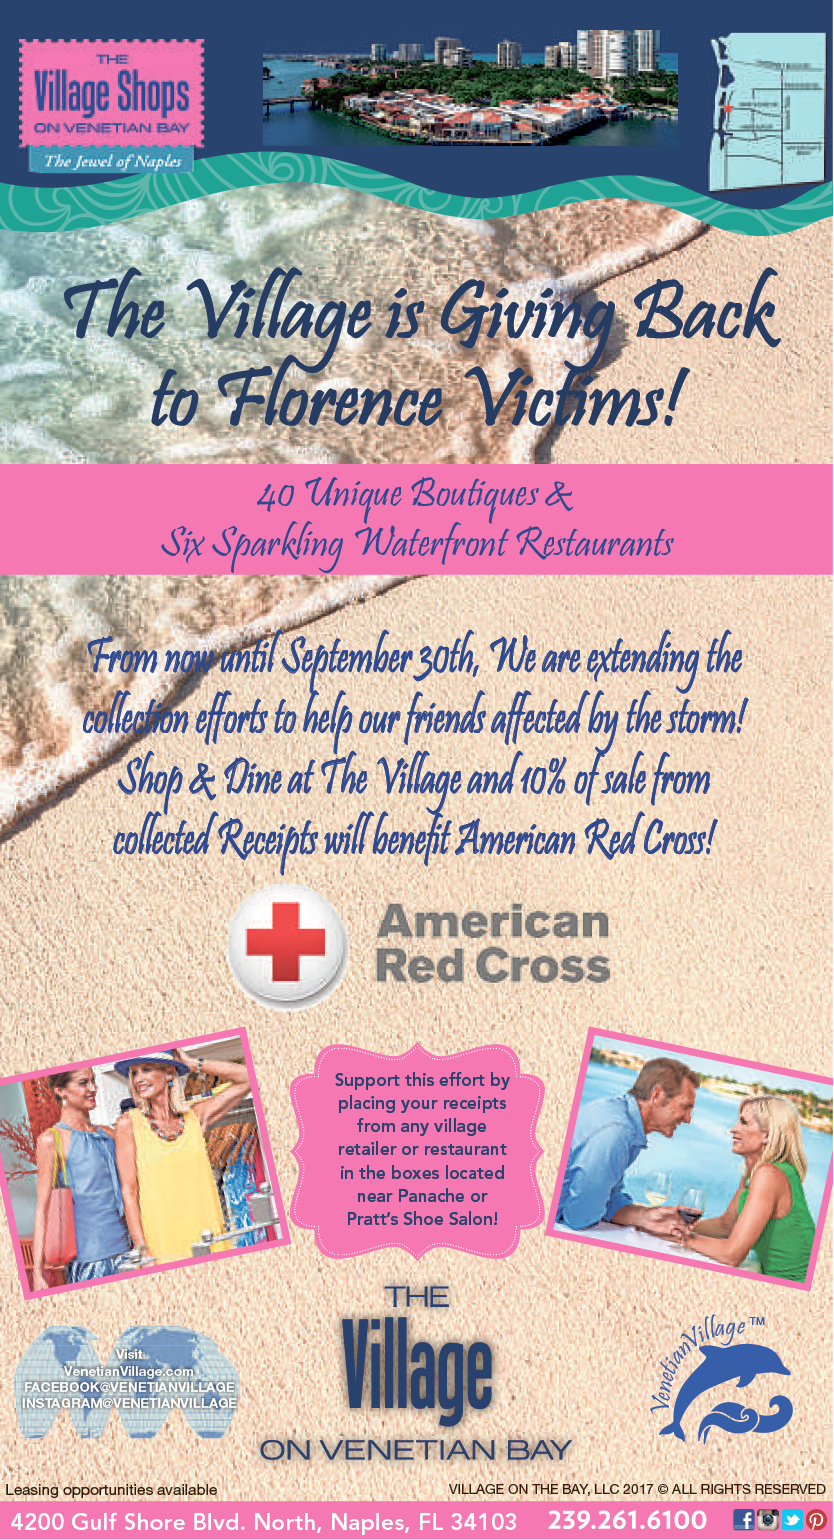 The Village is Giving Back to Florence Victims | The Village Shops on Venetian Bay Shopping and Dining Destination